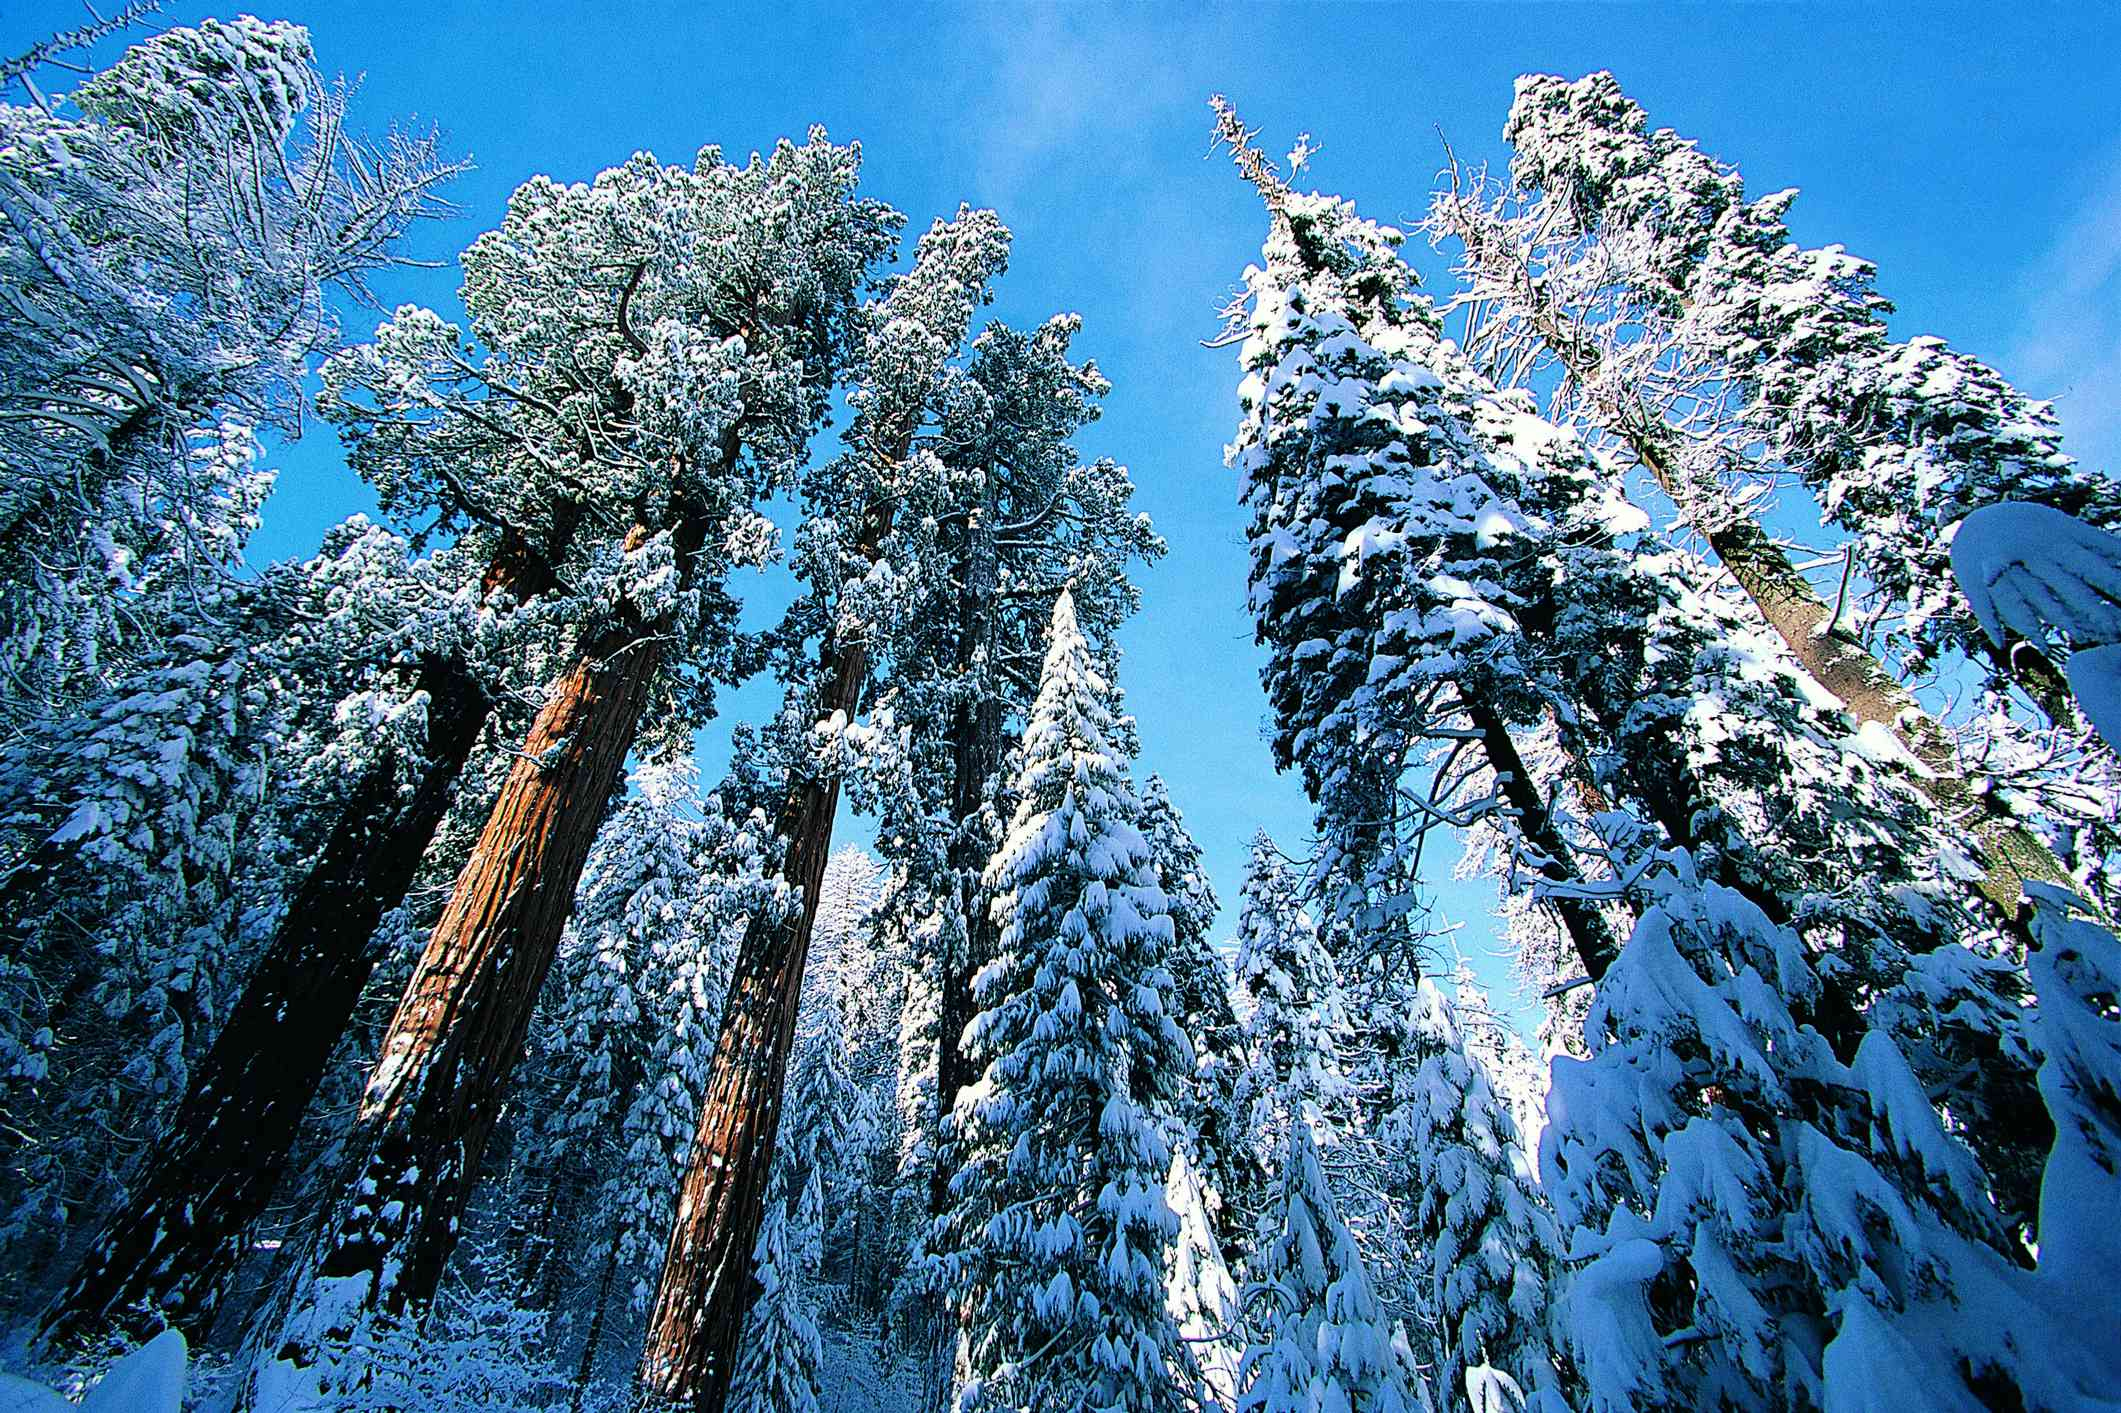 low angle view of snow-covered Giant Redwoods in winter, Sequoia National Park, California, USA